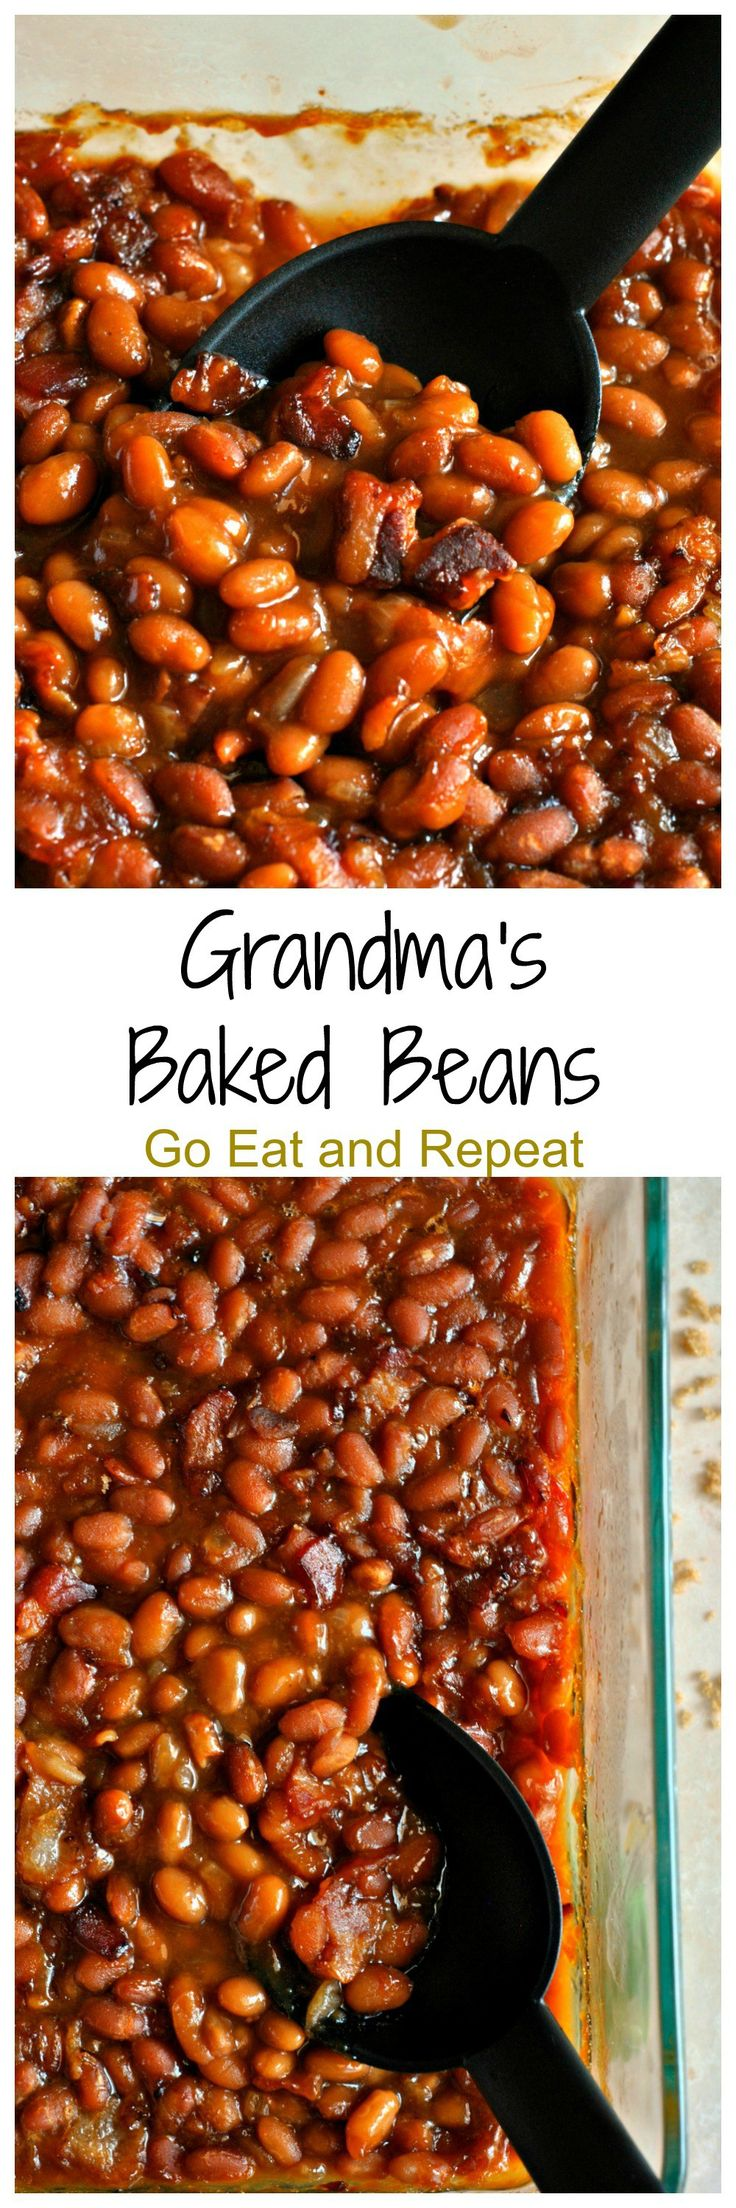 Grandma's Baked Beans are seasoned with bacon, brown sugar, molasses, and ketchup to create this mouthwatering side dish!